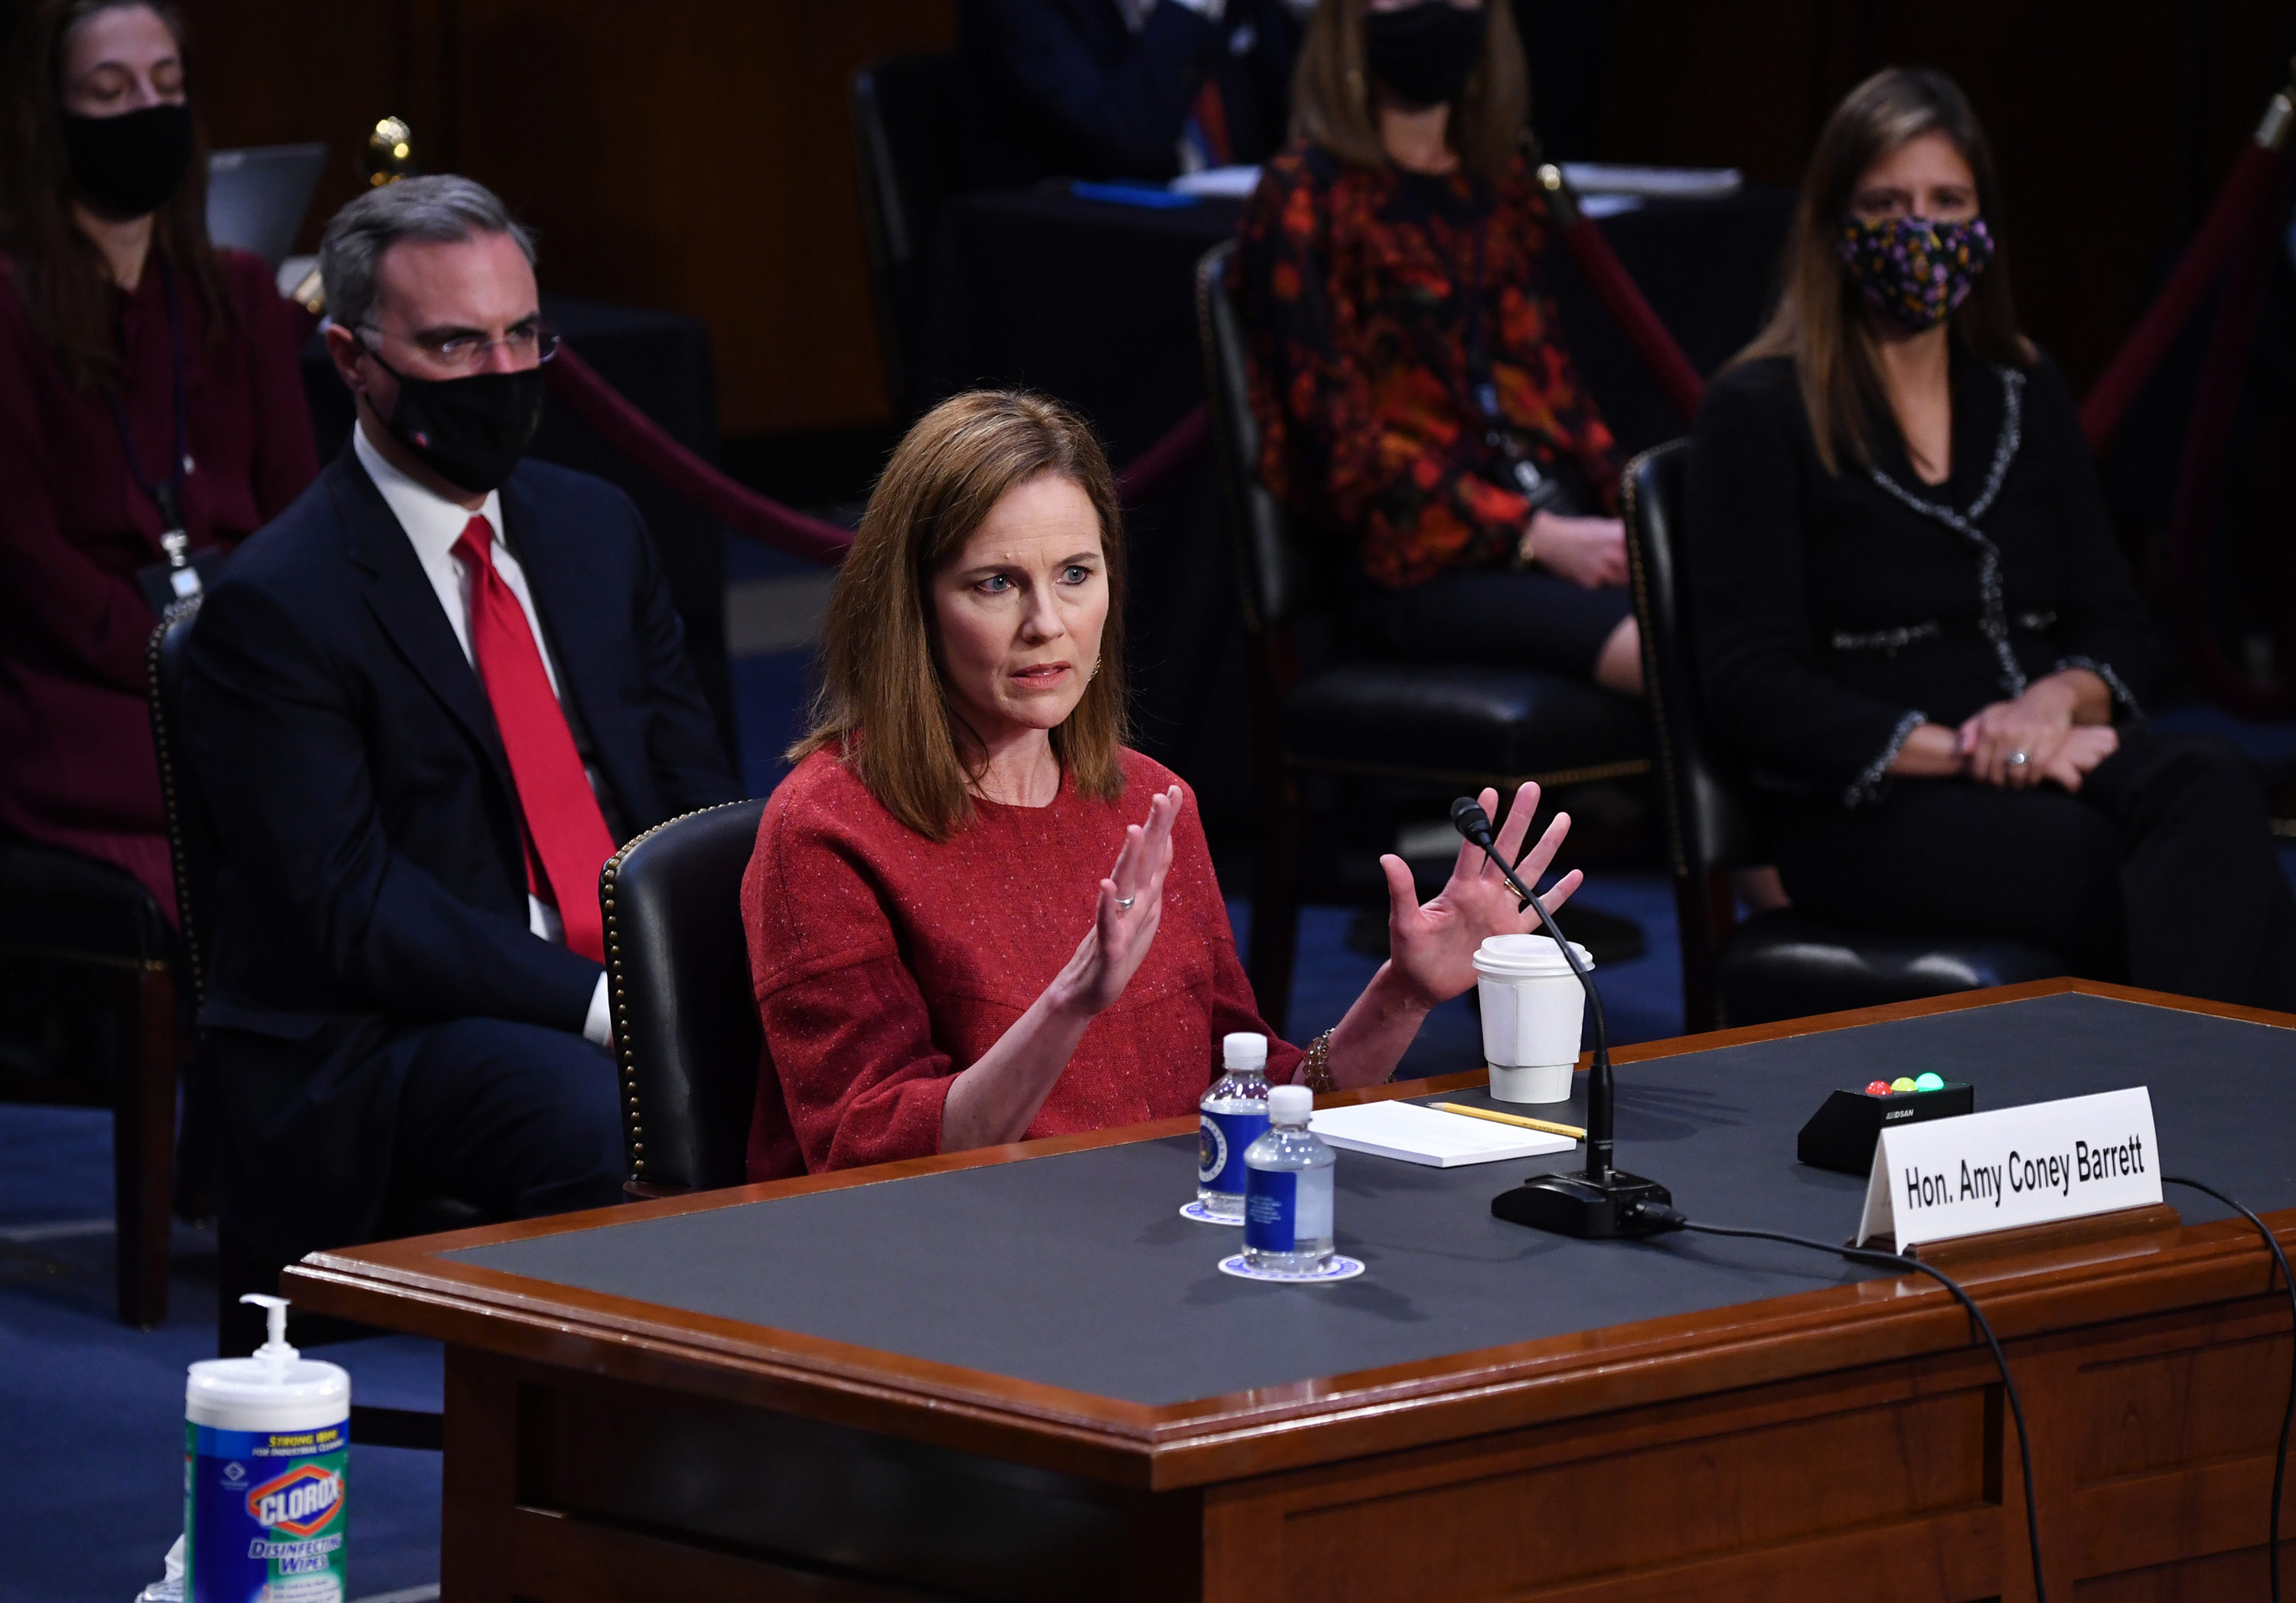 Supreme Court nominee Judge Amy Coney Barrett speaks during her confirmation hearing before the Senate Judiciary Committee on Capitol Hill in Washington, DC, on October 13.